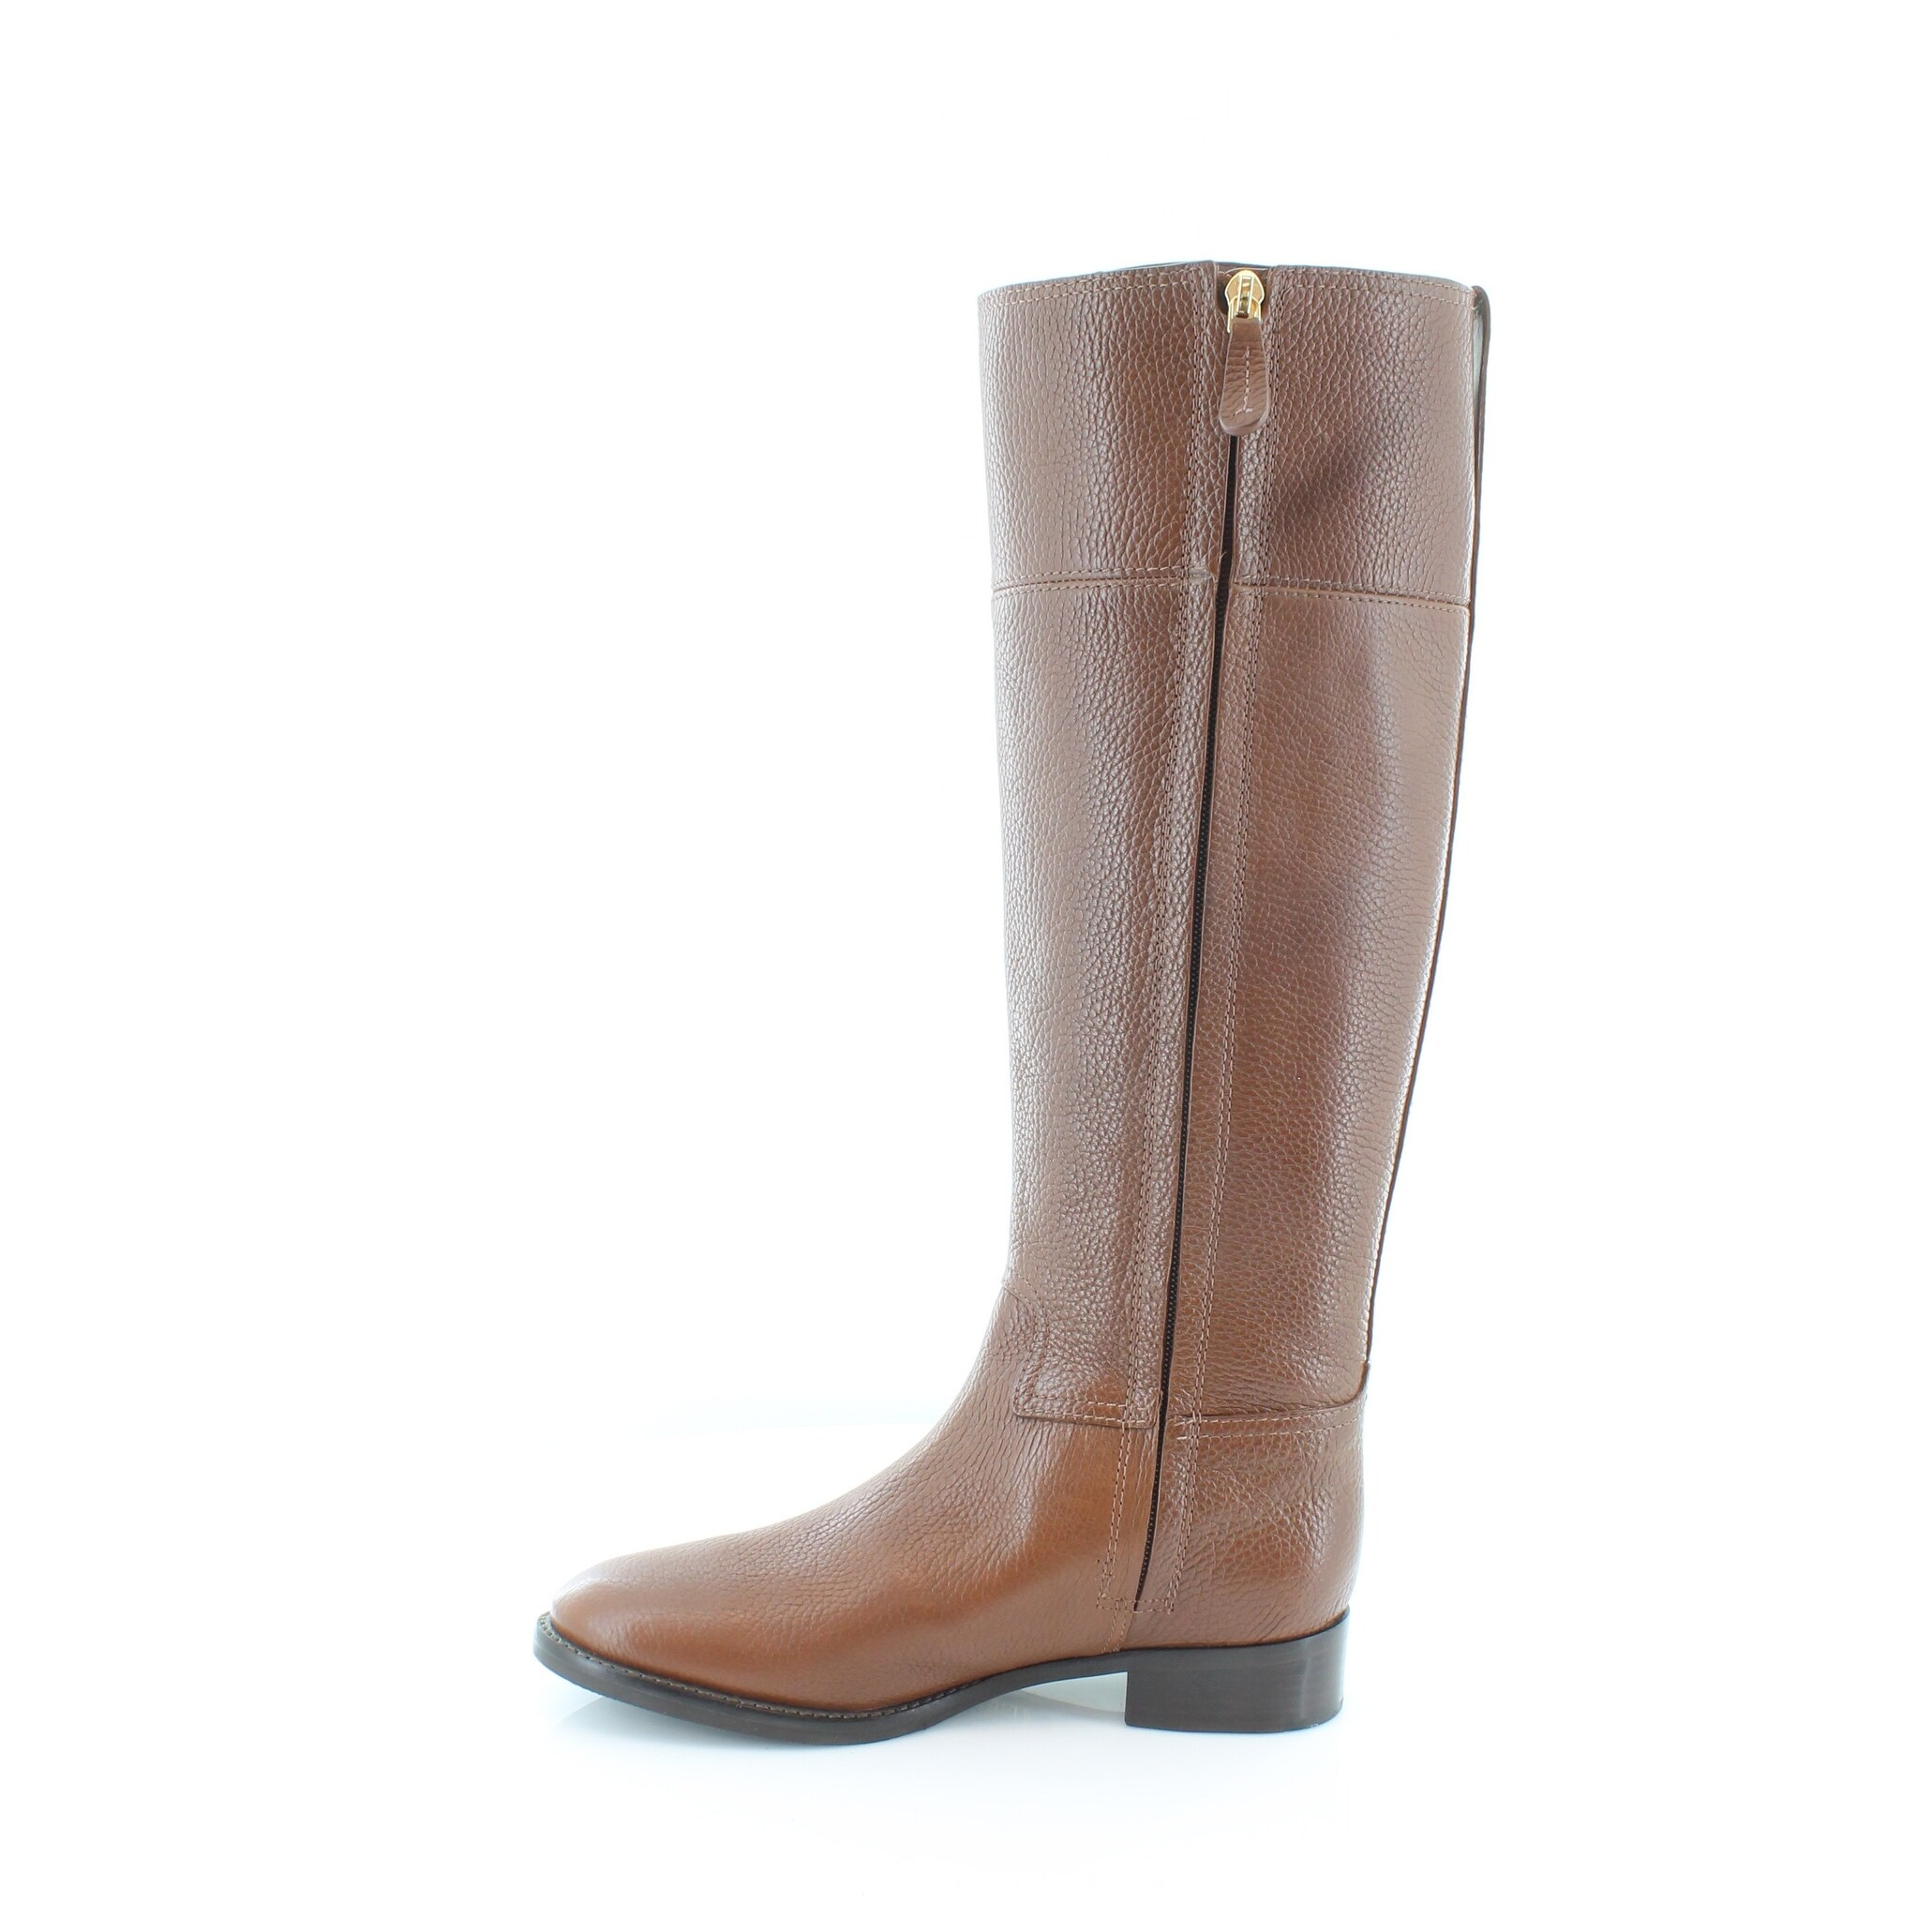 ab9bad266f06 Shop Tory Burch Junction Riding Boot Women s Boots Almond - Free Shipping  Today - Overstock - 21550762